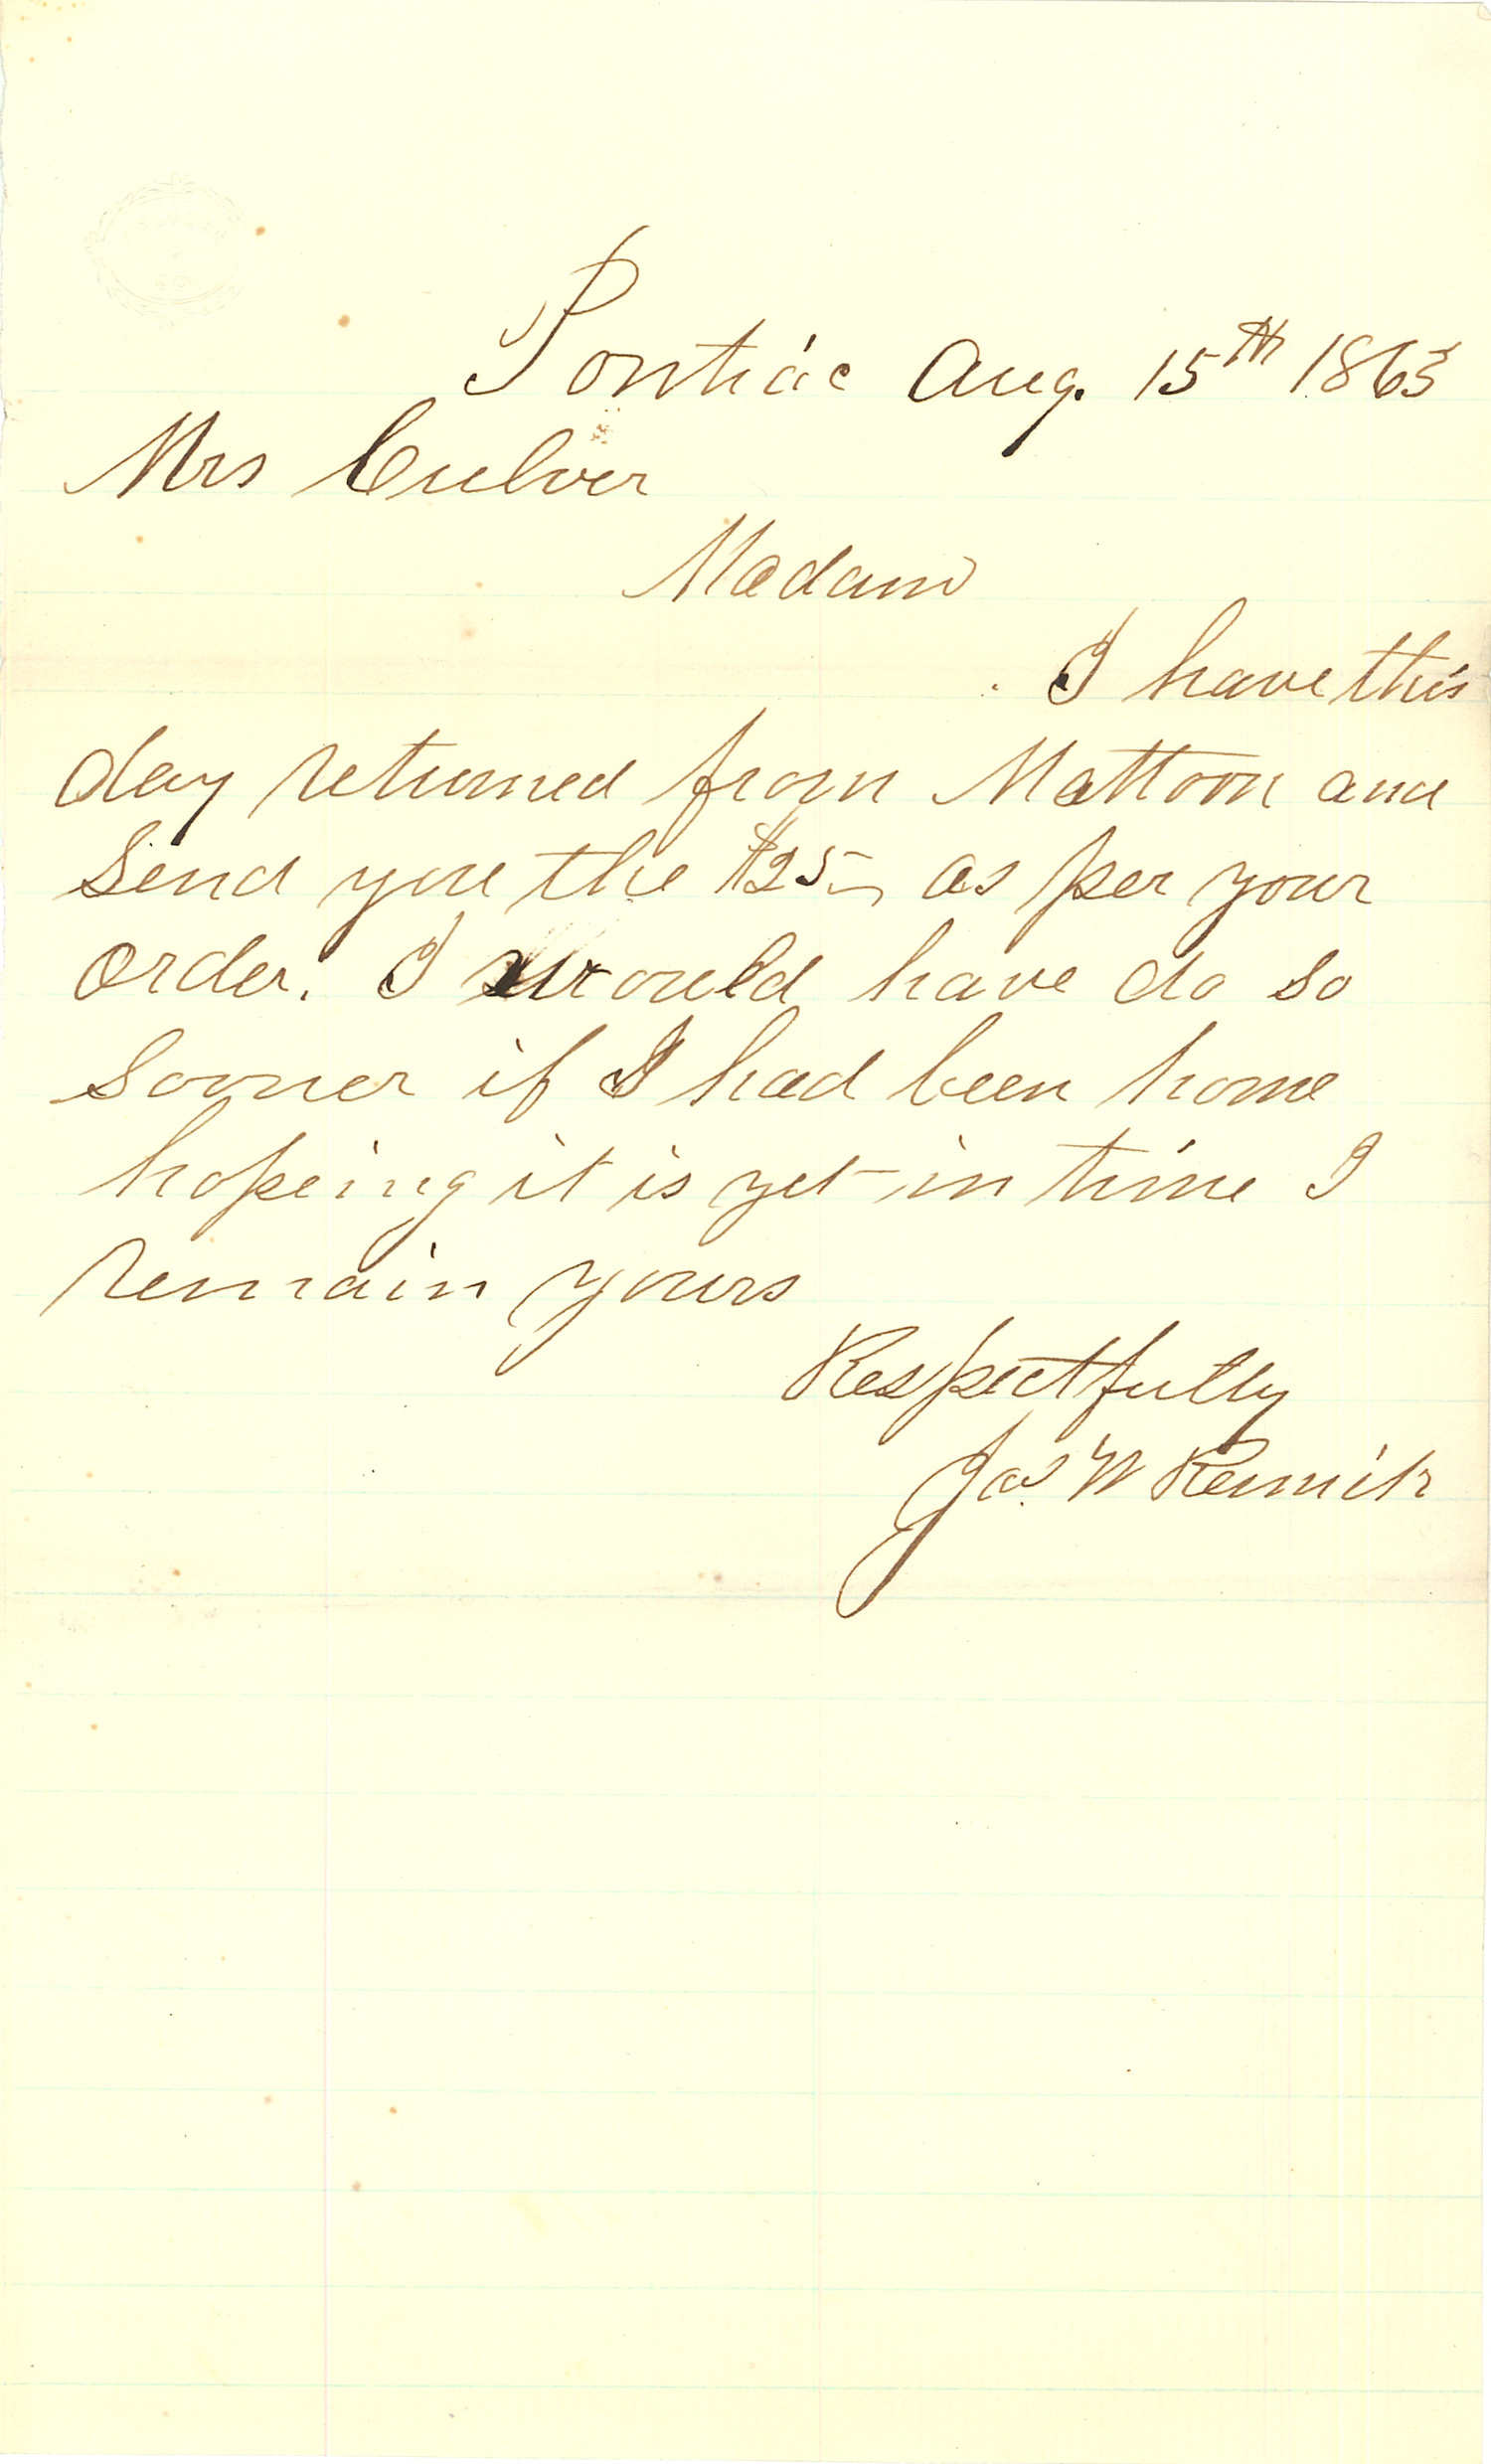 Joseph Culver Letter, August 15, 1863, Page 1